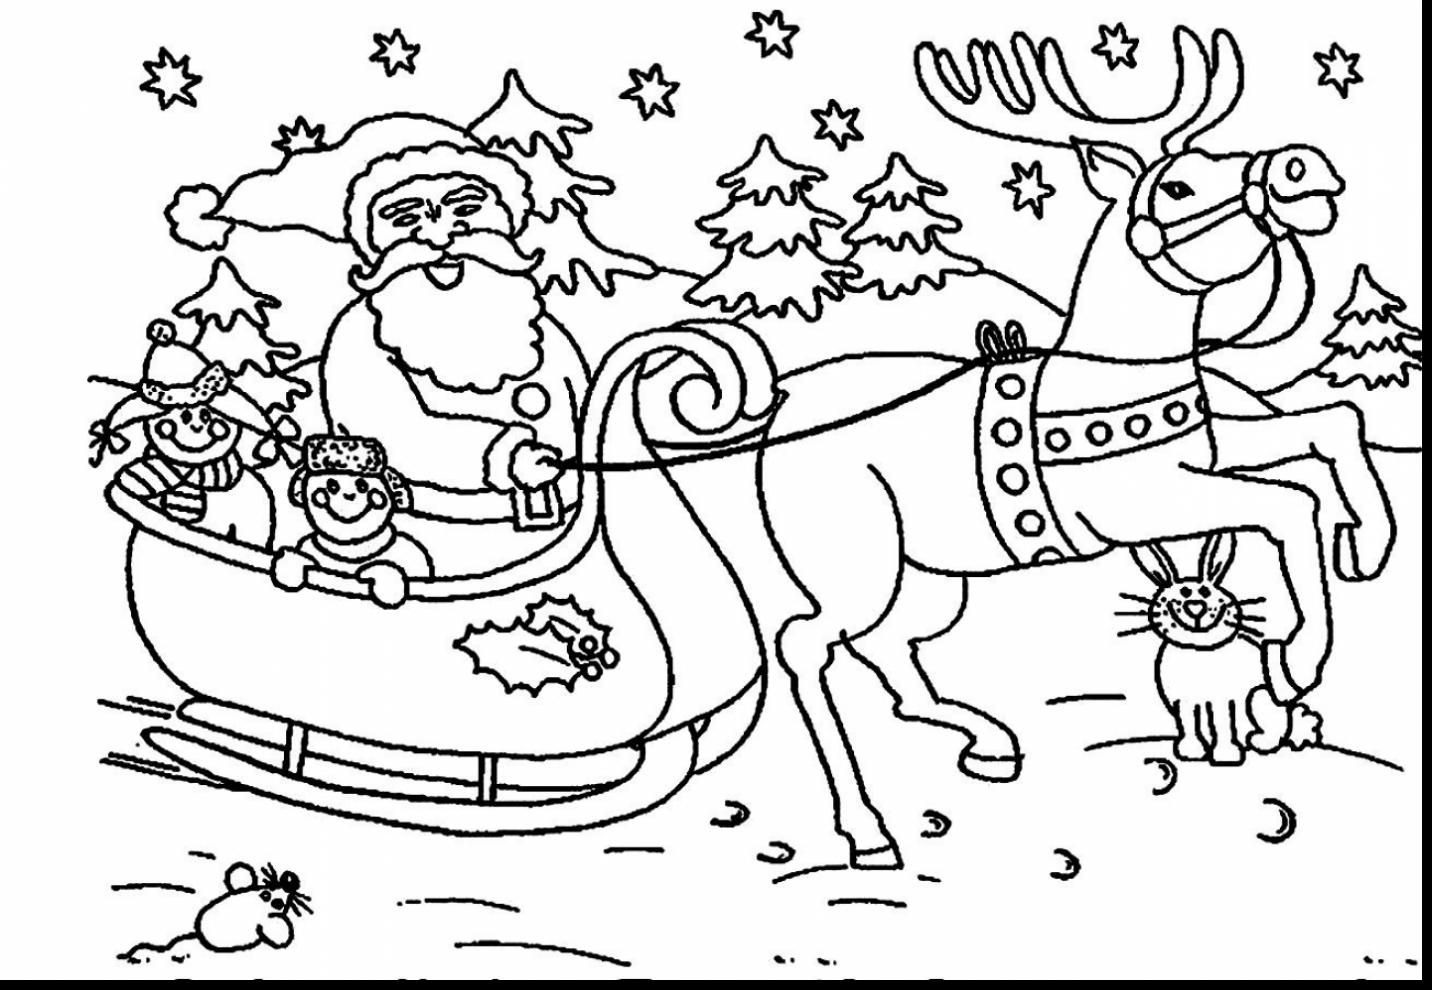 Christmas Coloring Pages Santa Sleigh With Extraordinary Reindeer